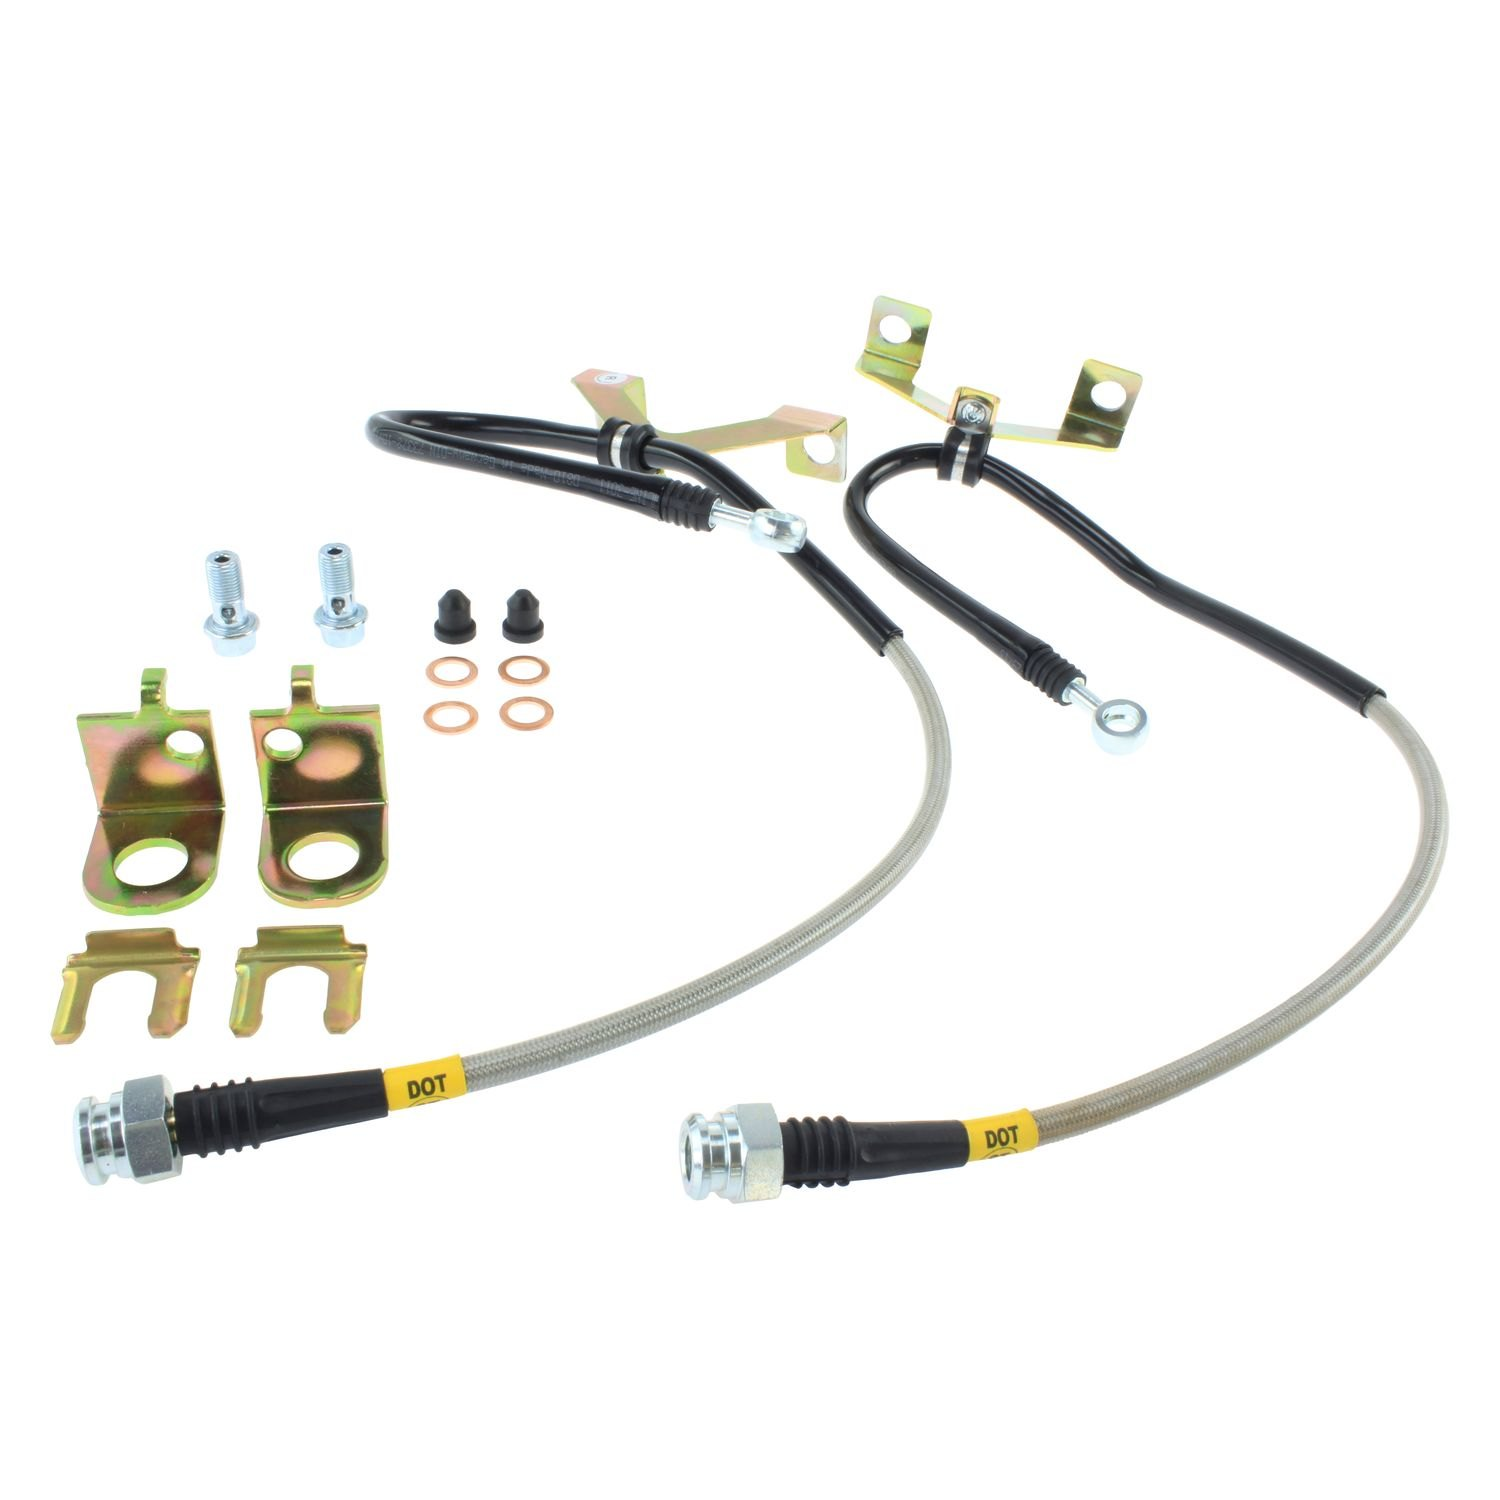 StopTech 950.45005 Stainless Steel Braided Brake Hose Kit Front Stainless Steel Braided Brake Hose Kit